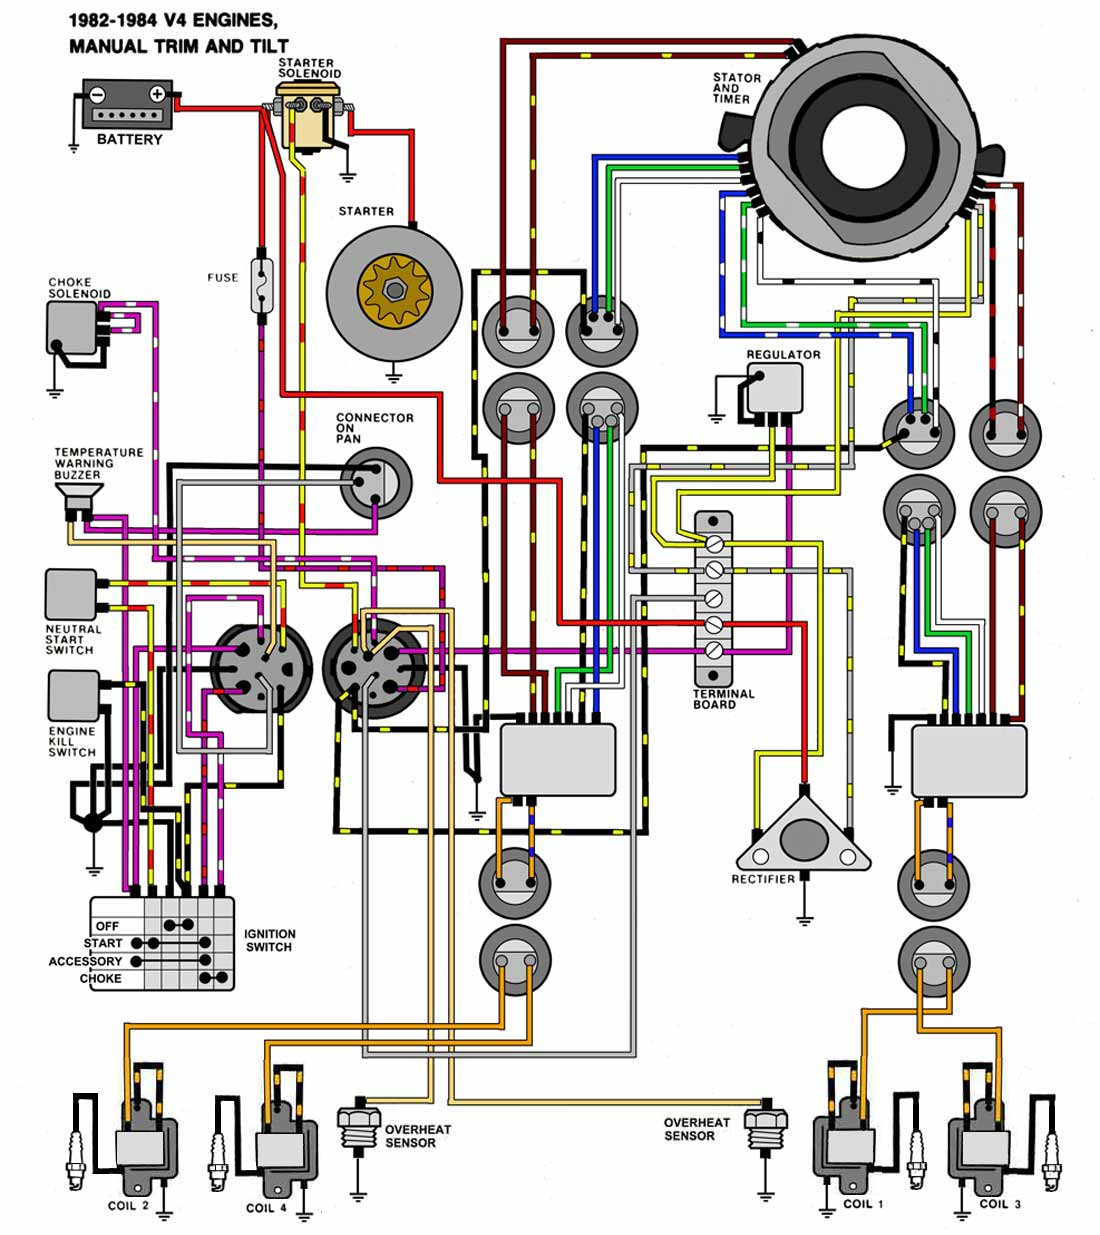 82_84_V4_NOTNT mastertech marine evinrude johnson outboard wiring diagrams Johnson Ignition Switch Wiring Diagram at bayanpartner.co